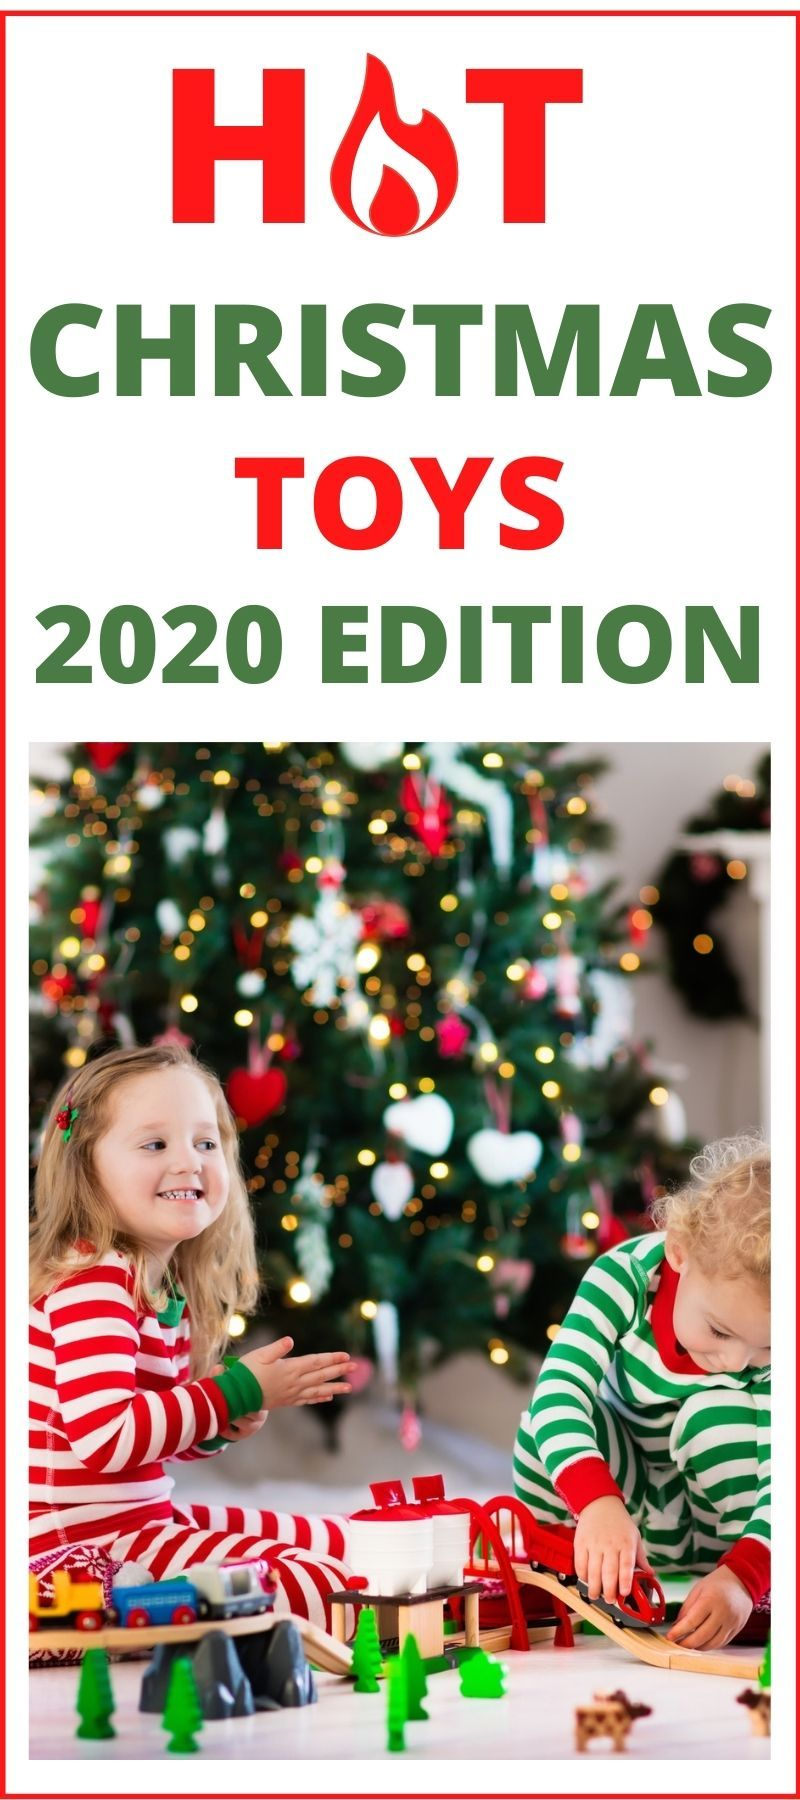 Top Christmas Toys 2020 Here Are The Toys Kids Want This Christmas In 2020 Christmas Toys Top Christmas Toys Holiday Gift Guide